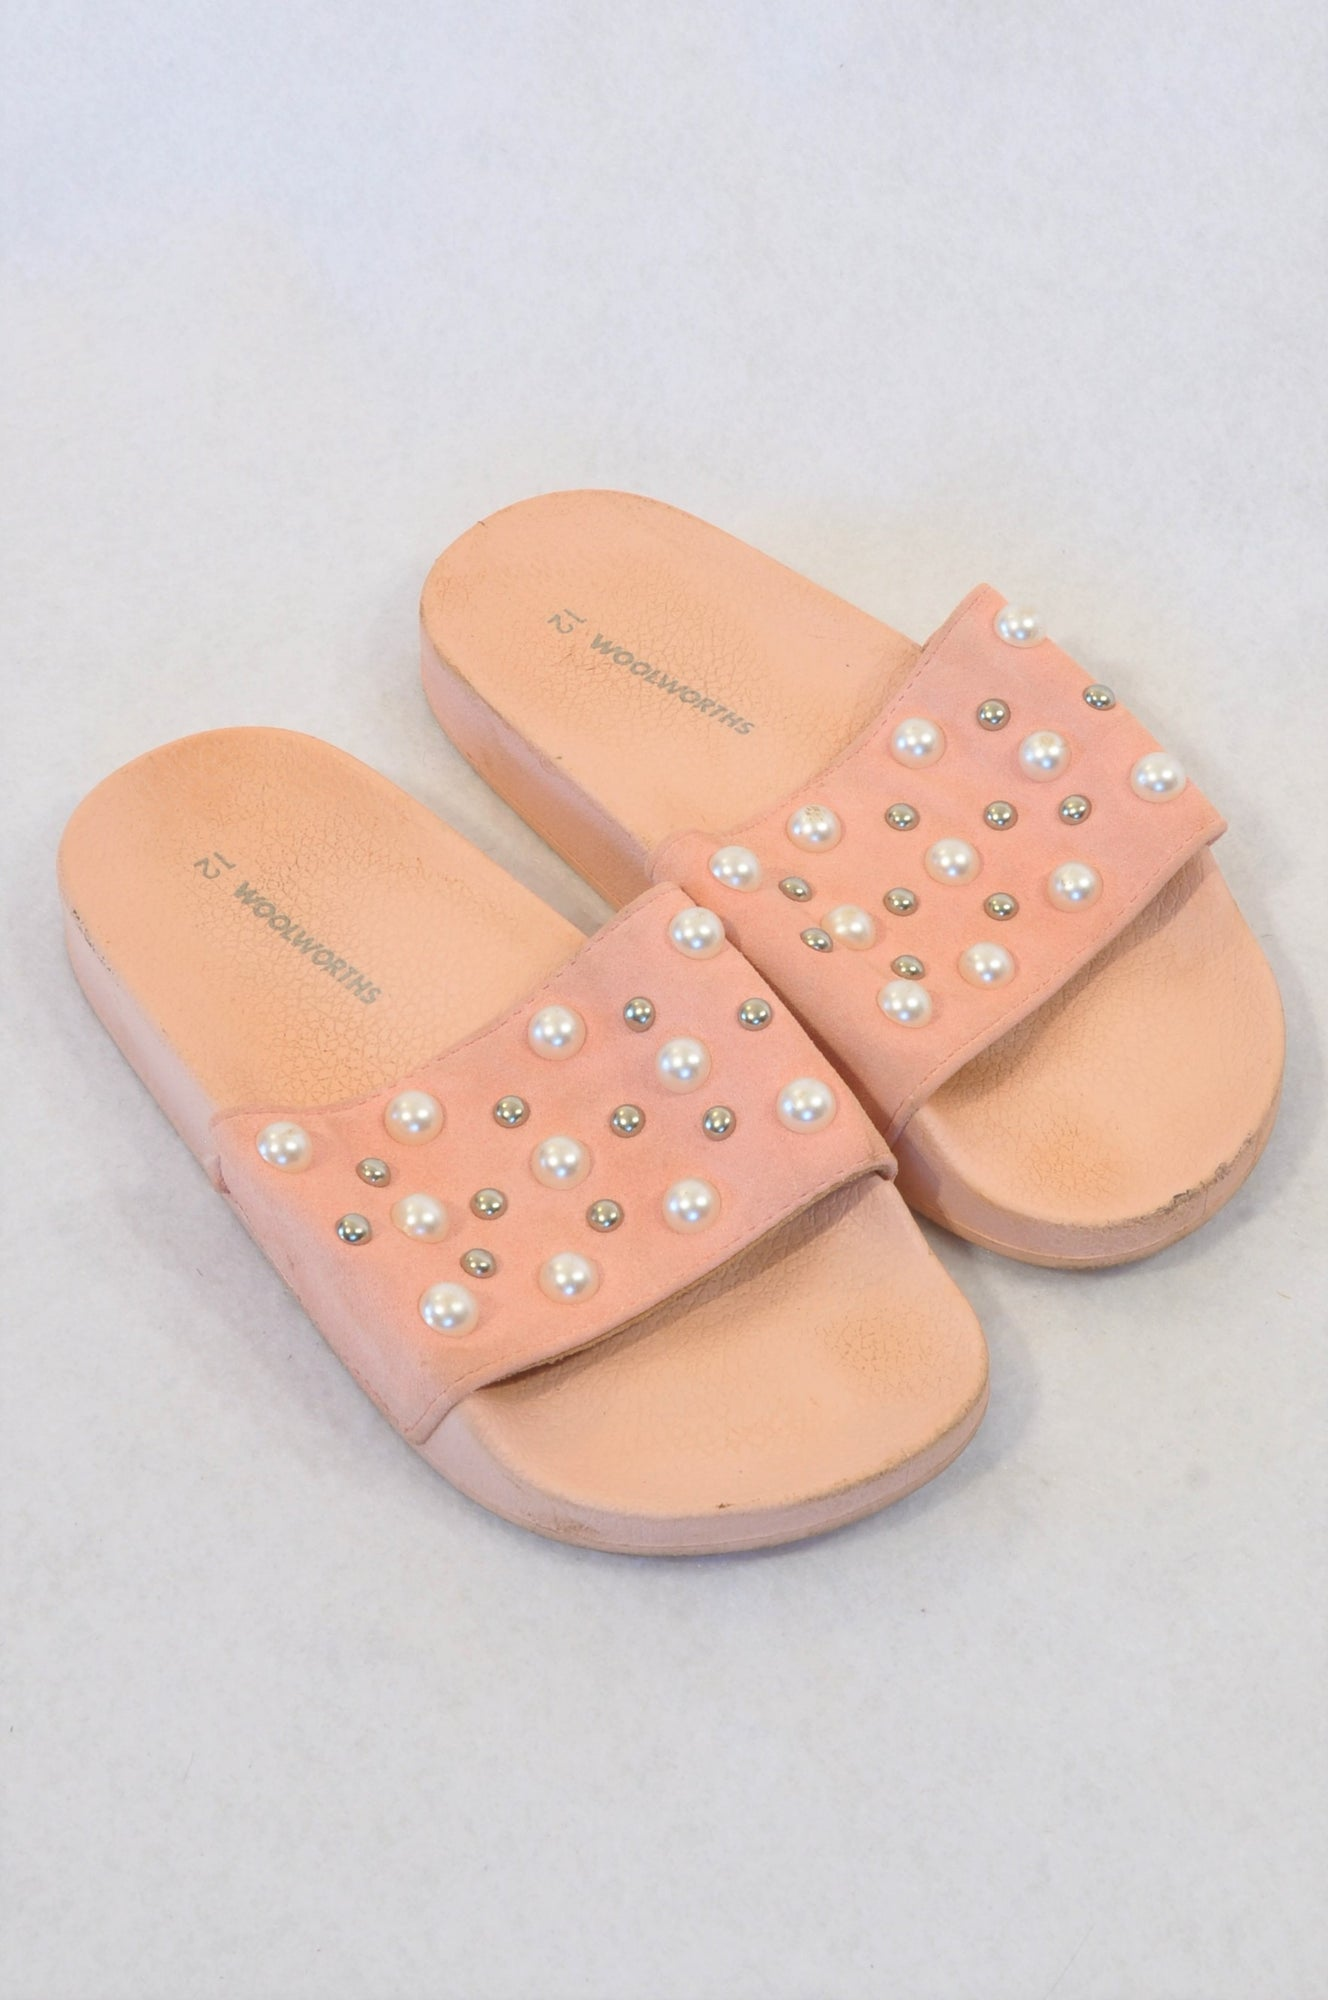 Woolworths Size 12 Pink Beaded Sandals Girls 6 months to 3 years